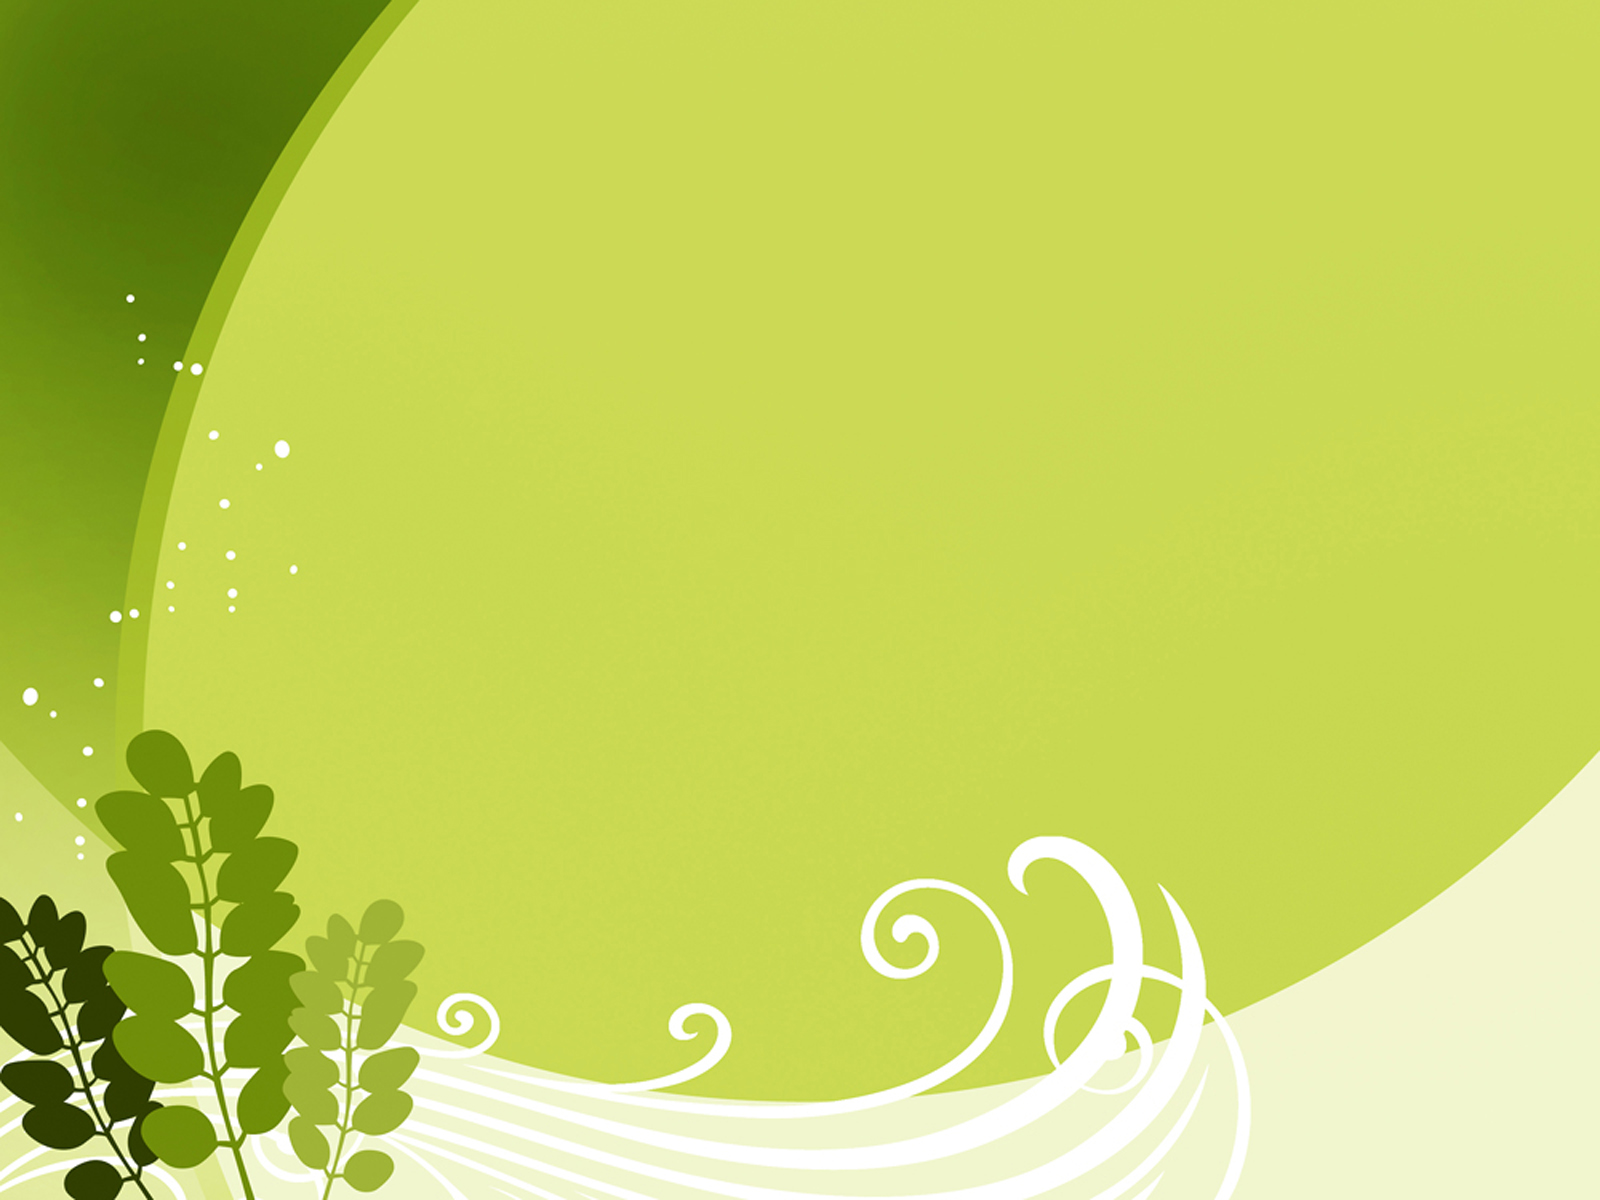 Green-Leaf-Template-Powerpoint-Backgrounds.jpg